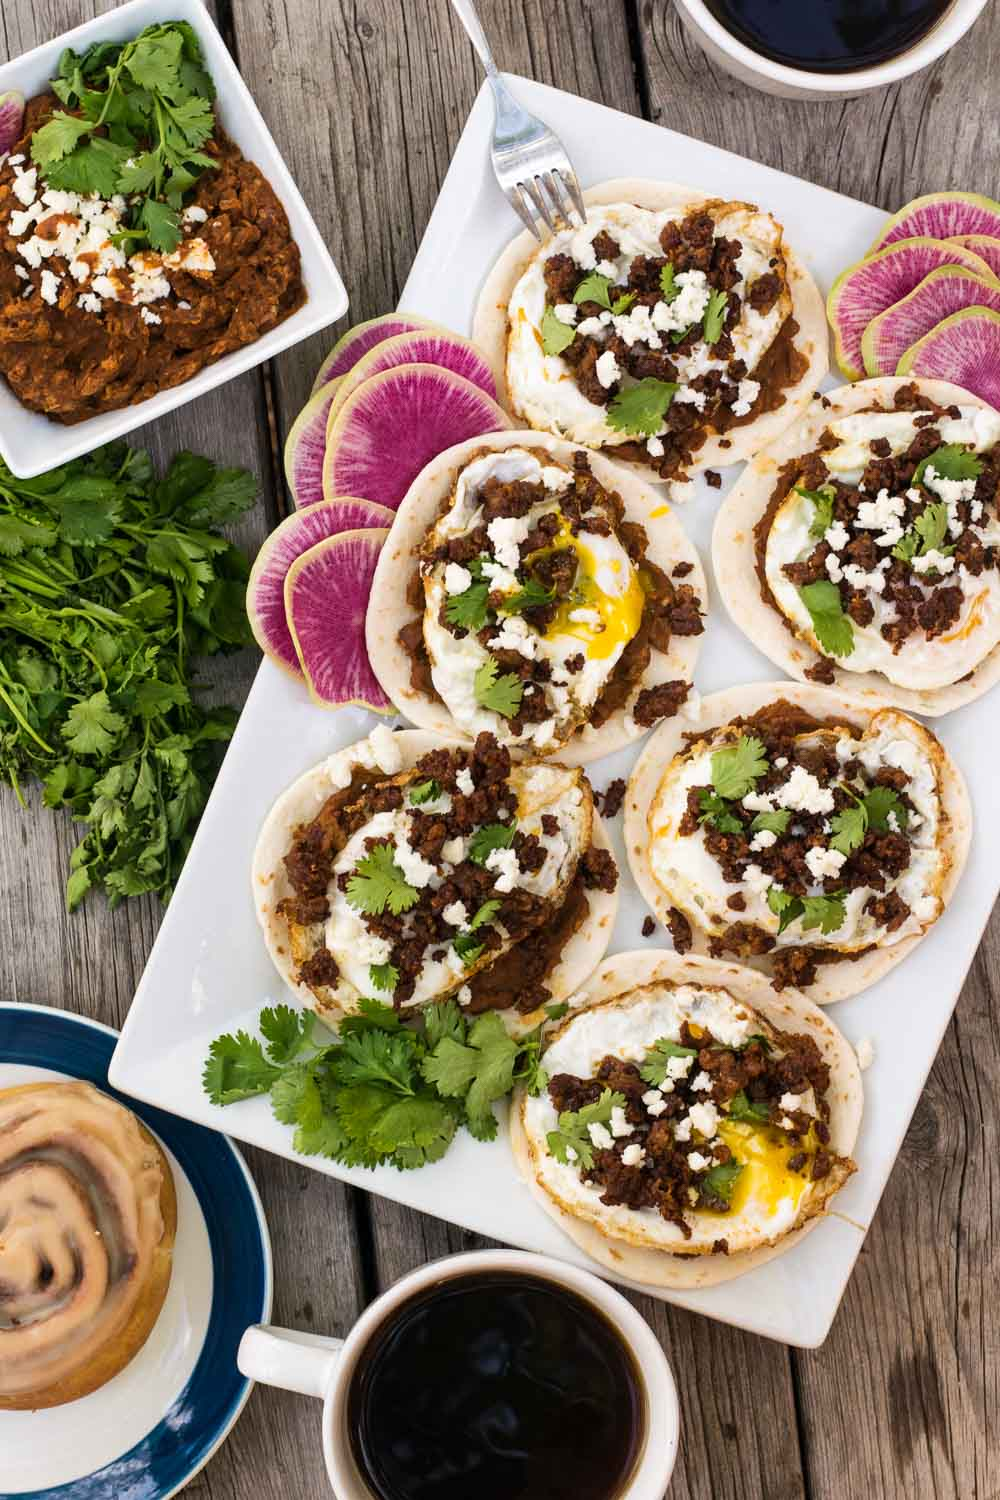 Spicy chorizo + smoky adobo refried beans + gooey fried eggs are perfectly paired for maximum morning happiness, whether it's weekend brunch or a weekday treat.